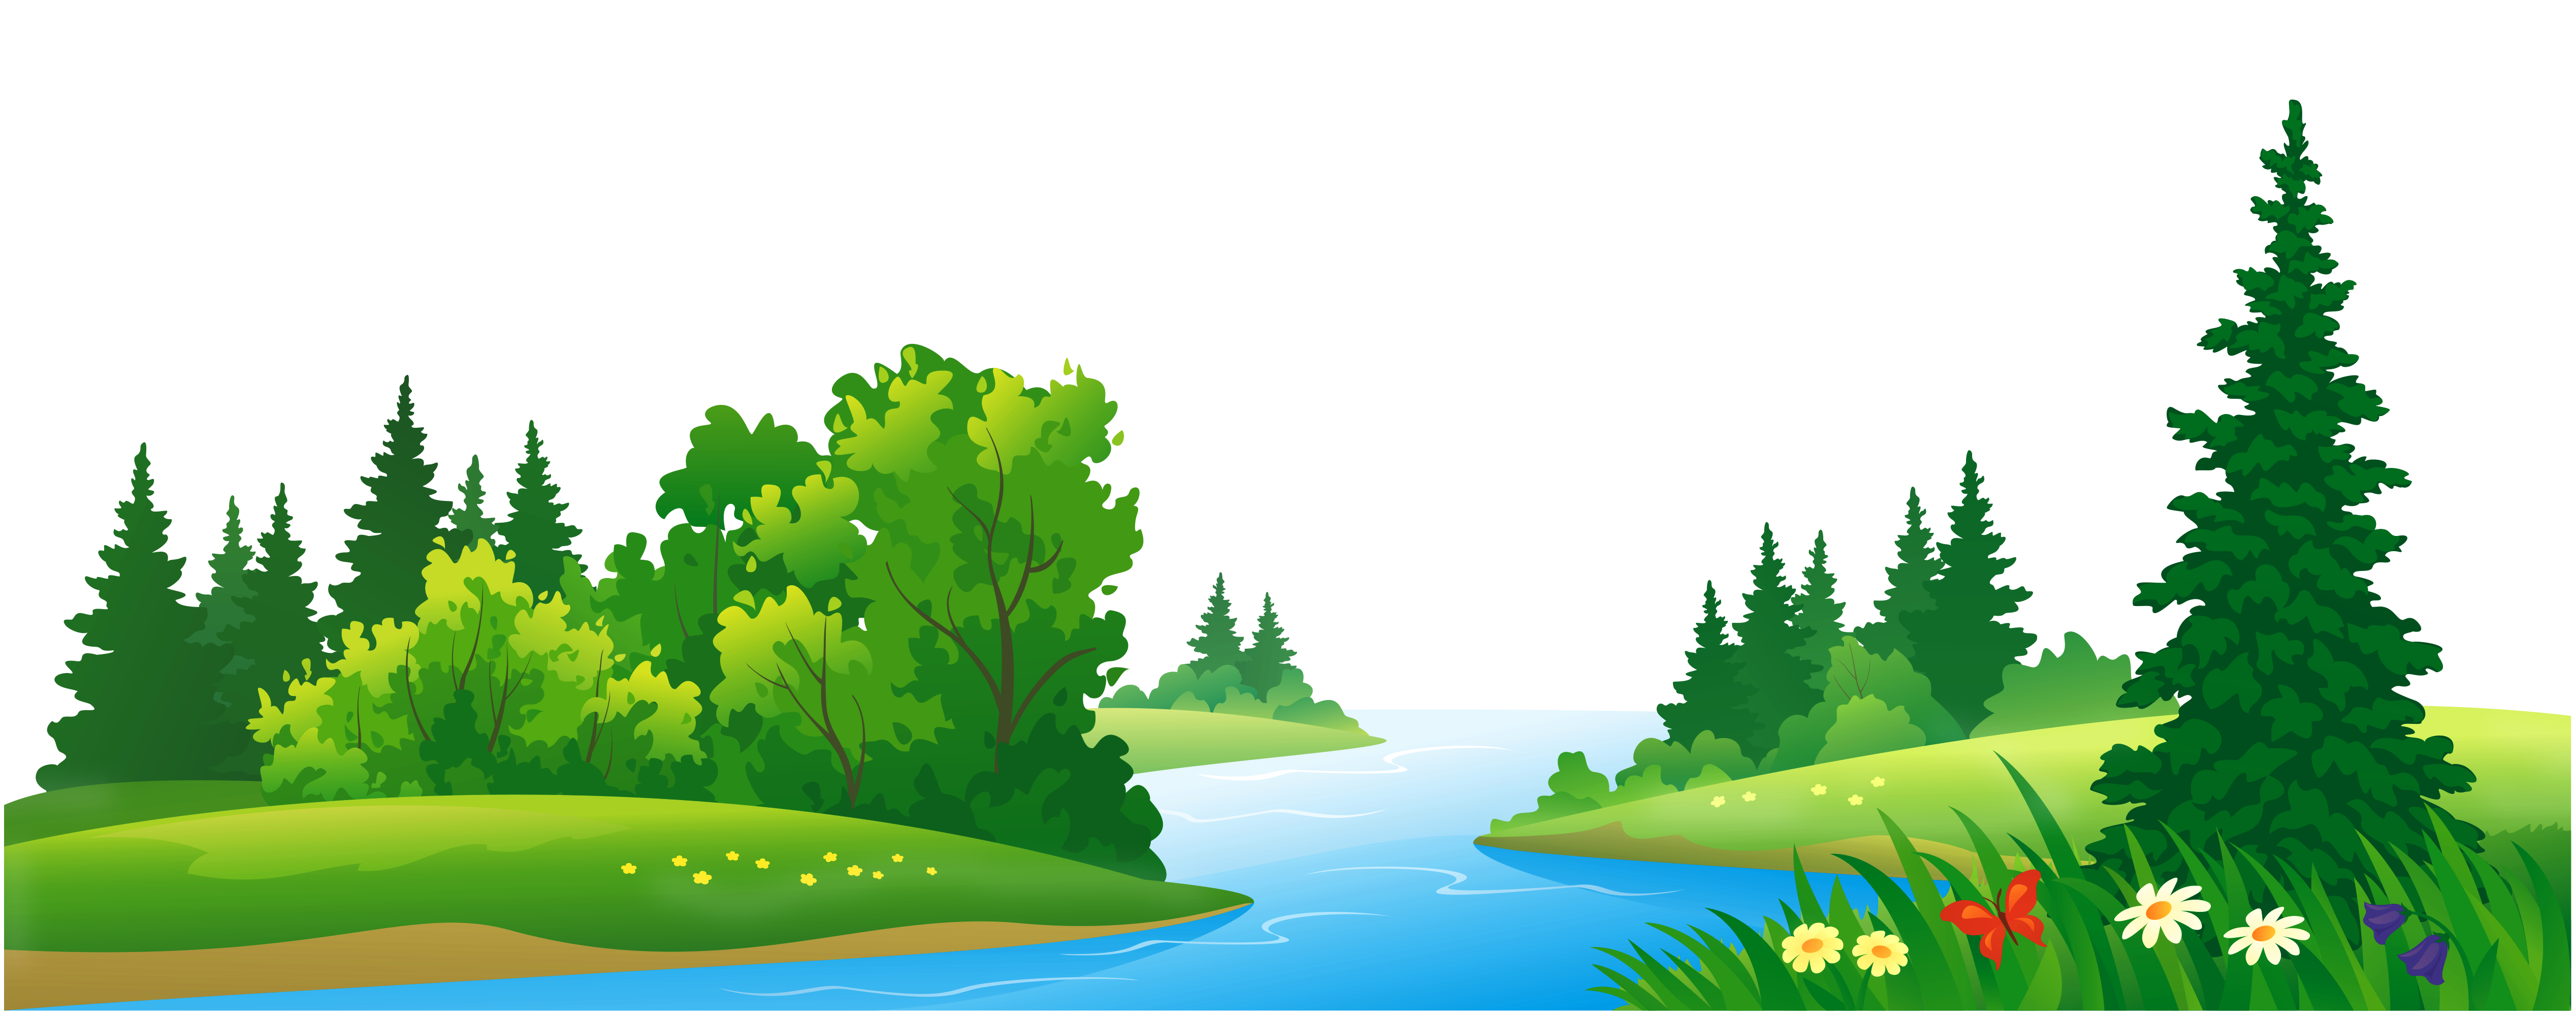 Scenery background clipart images gallery for free download.